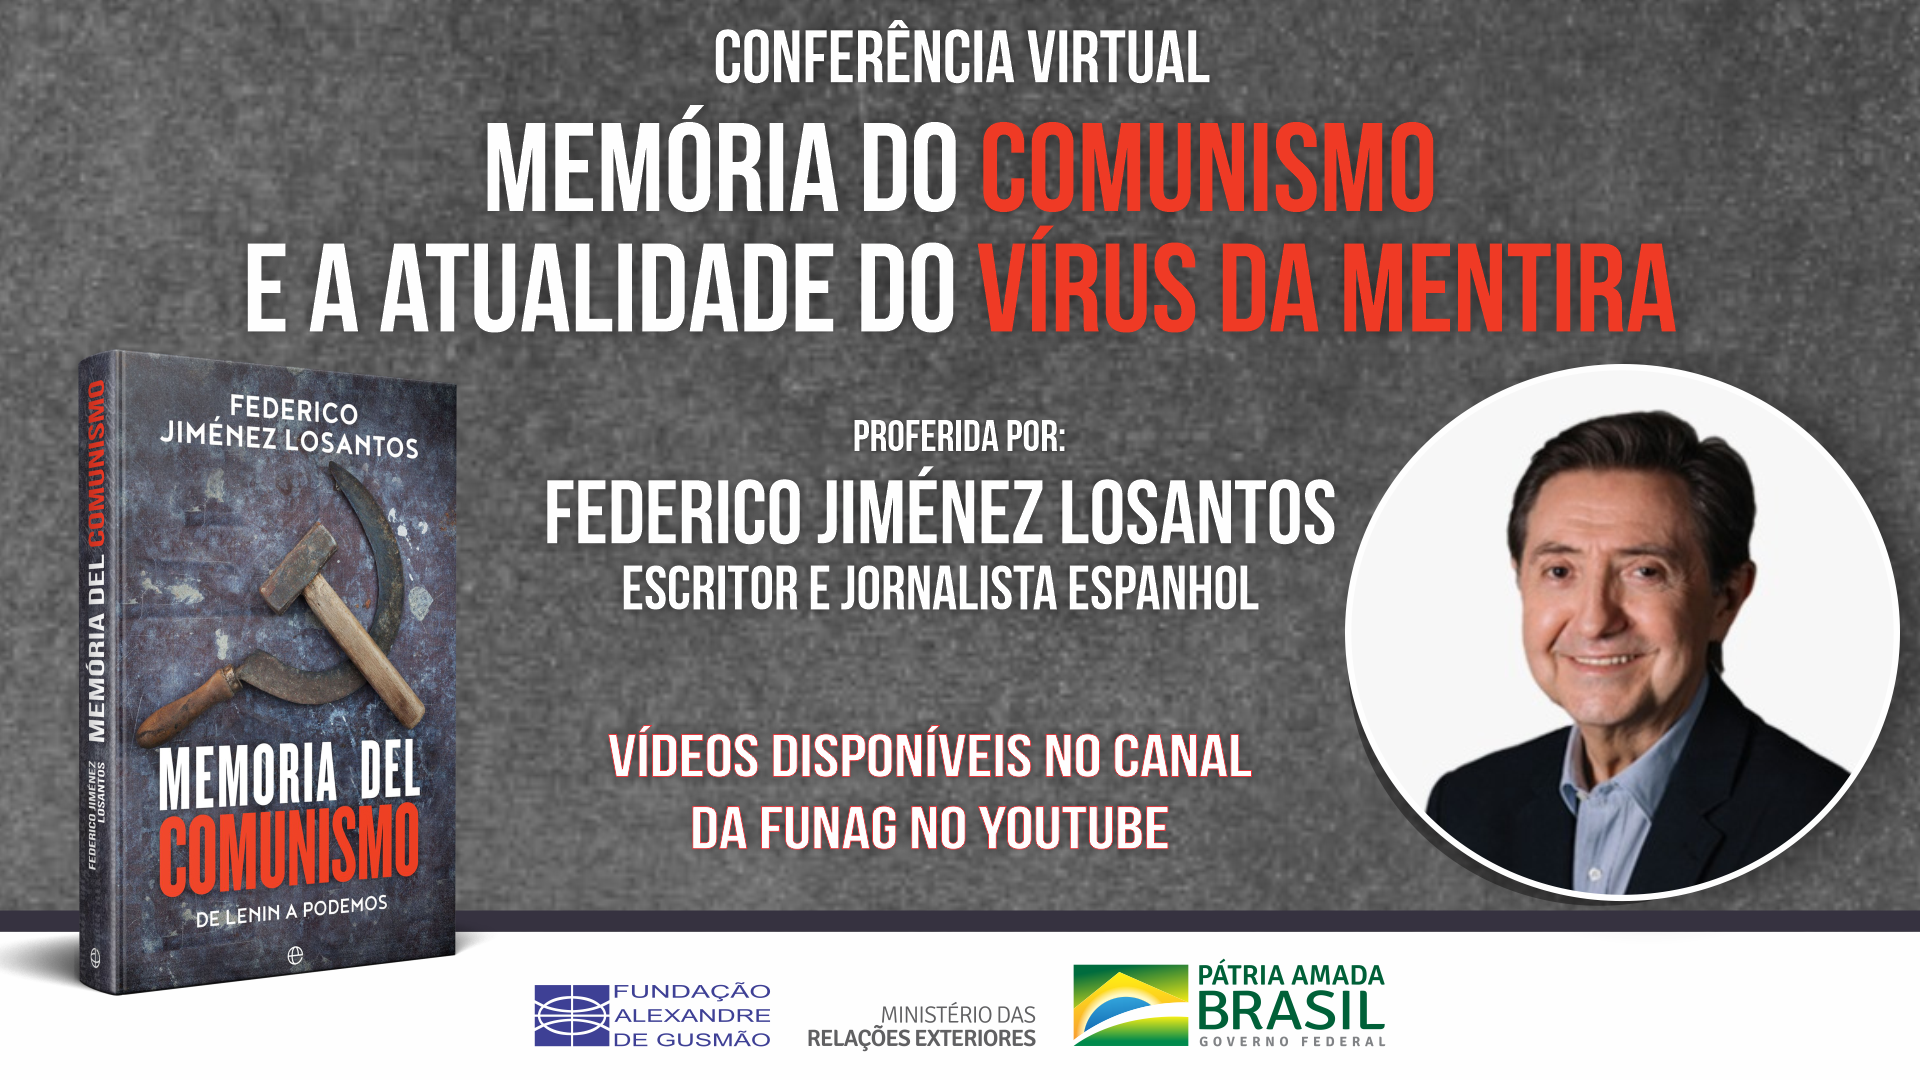 Watch the videos of the conference on the memory of communism and the topicality of the virus of deceit